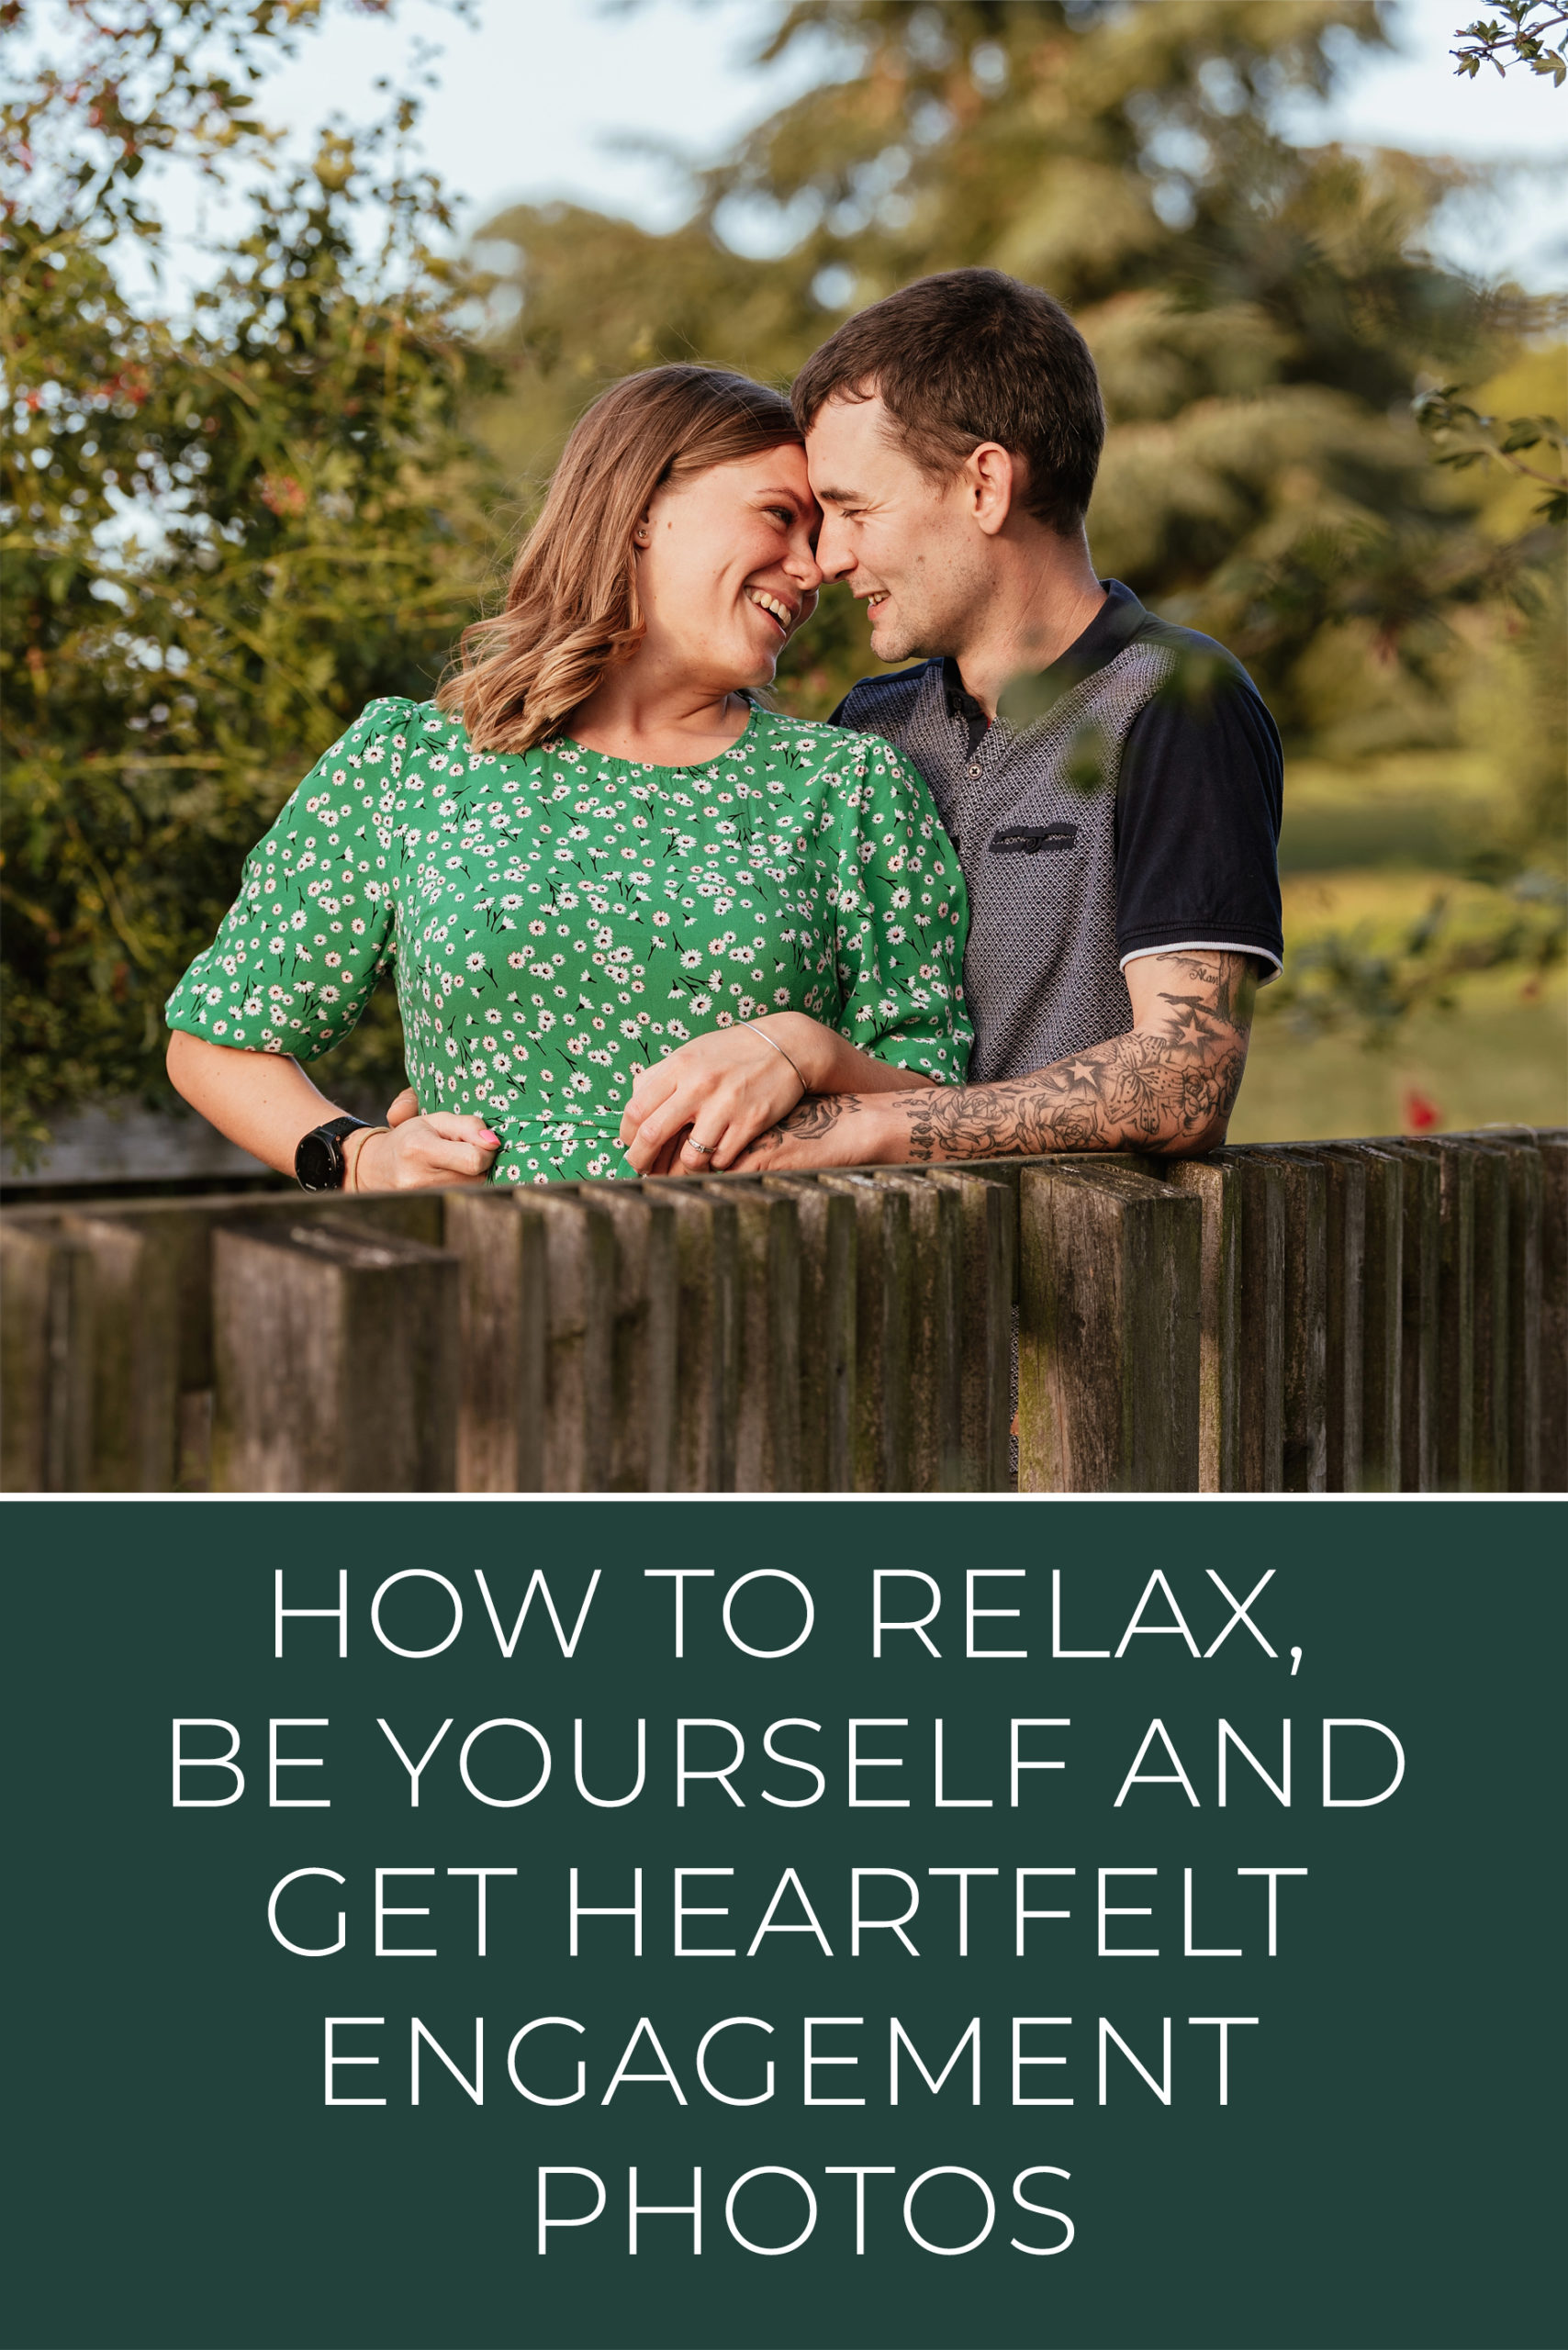 How to relax be yourself and get heartfelt engagement photos